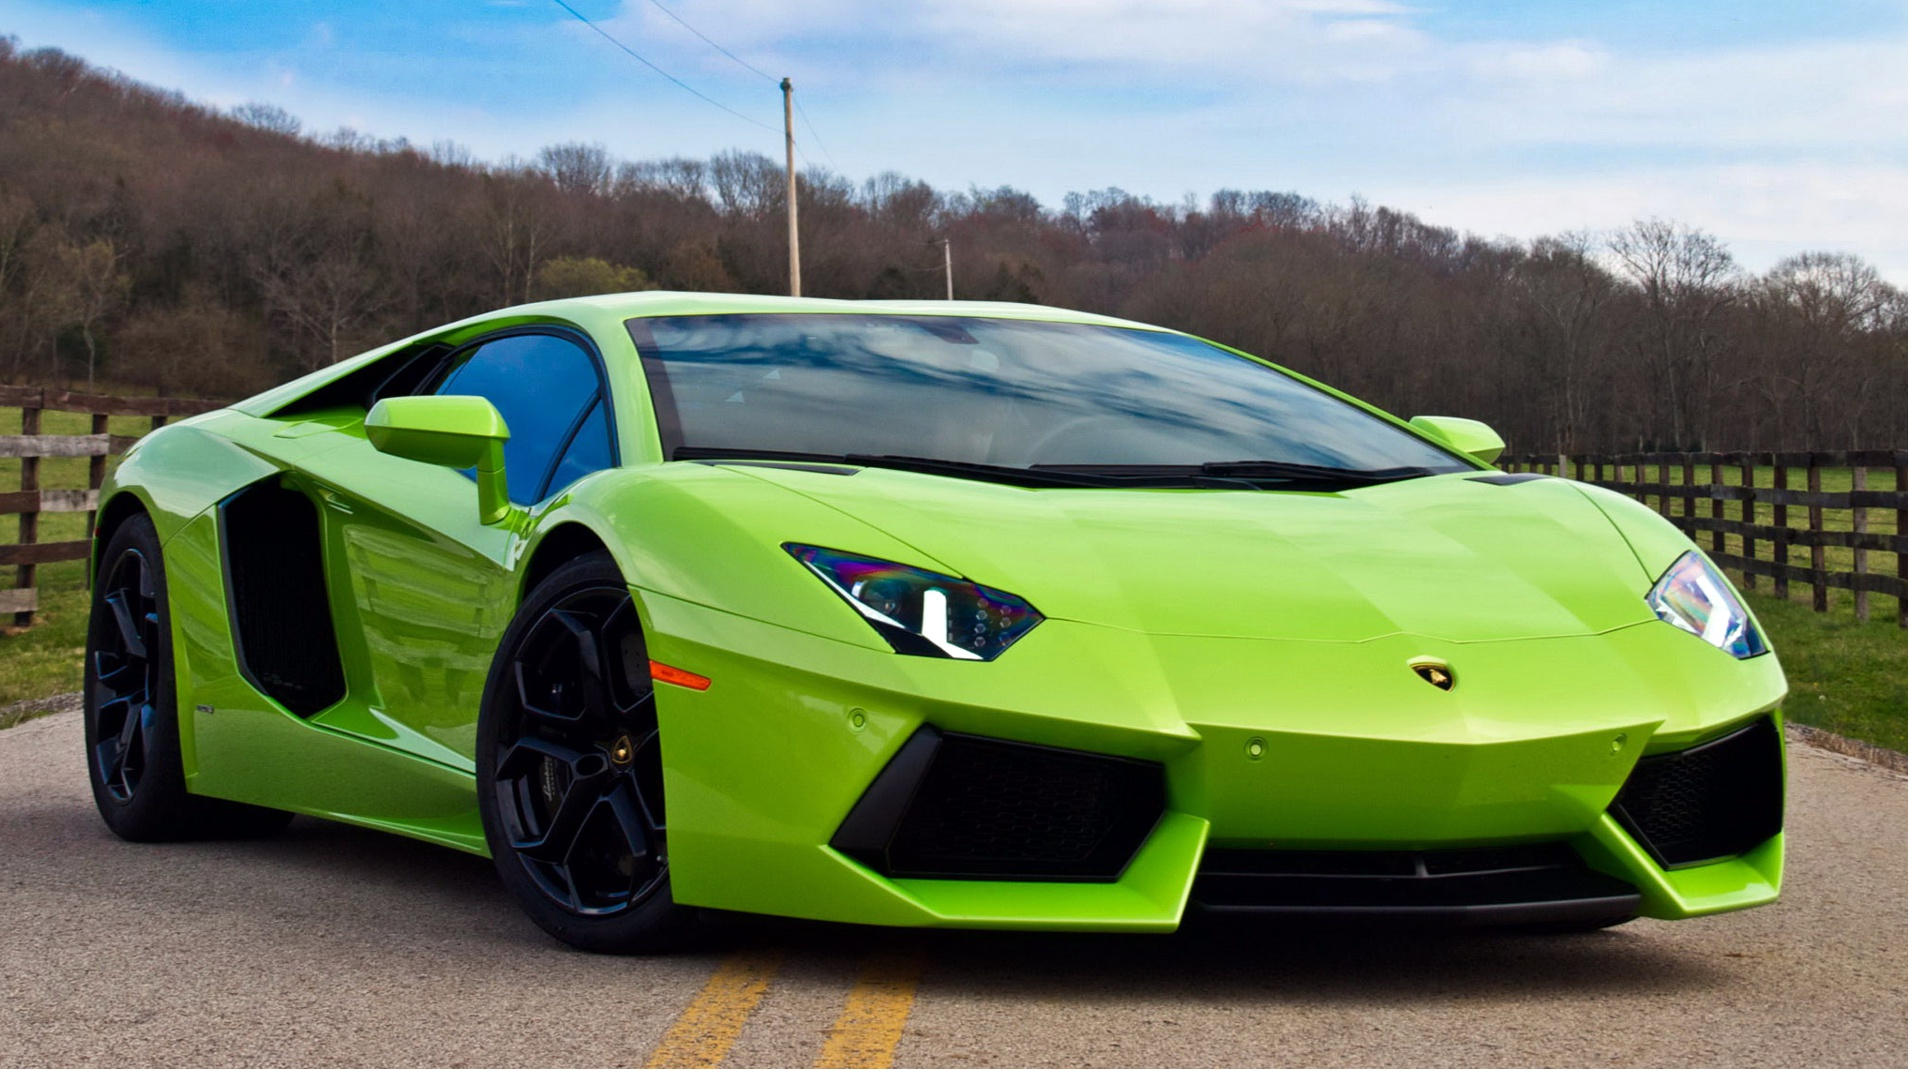 Green Lamborghini Test Drive 243.51 Kb